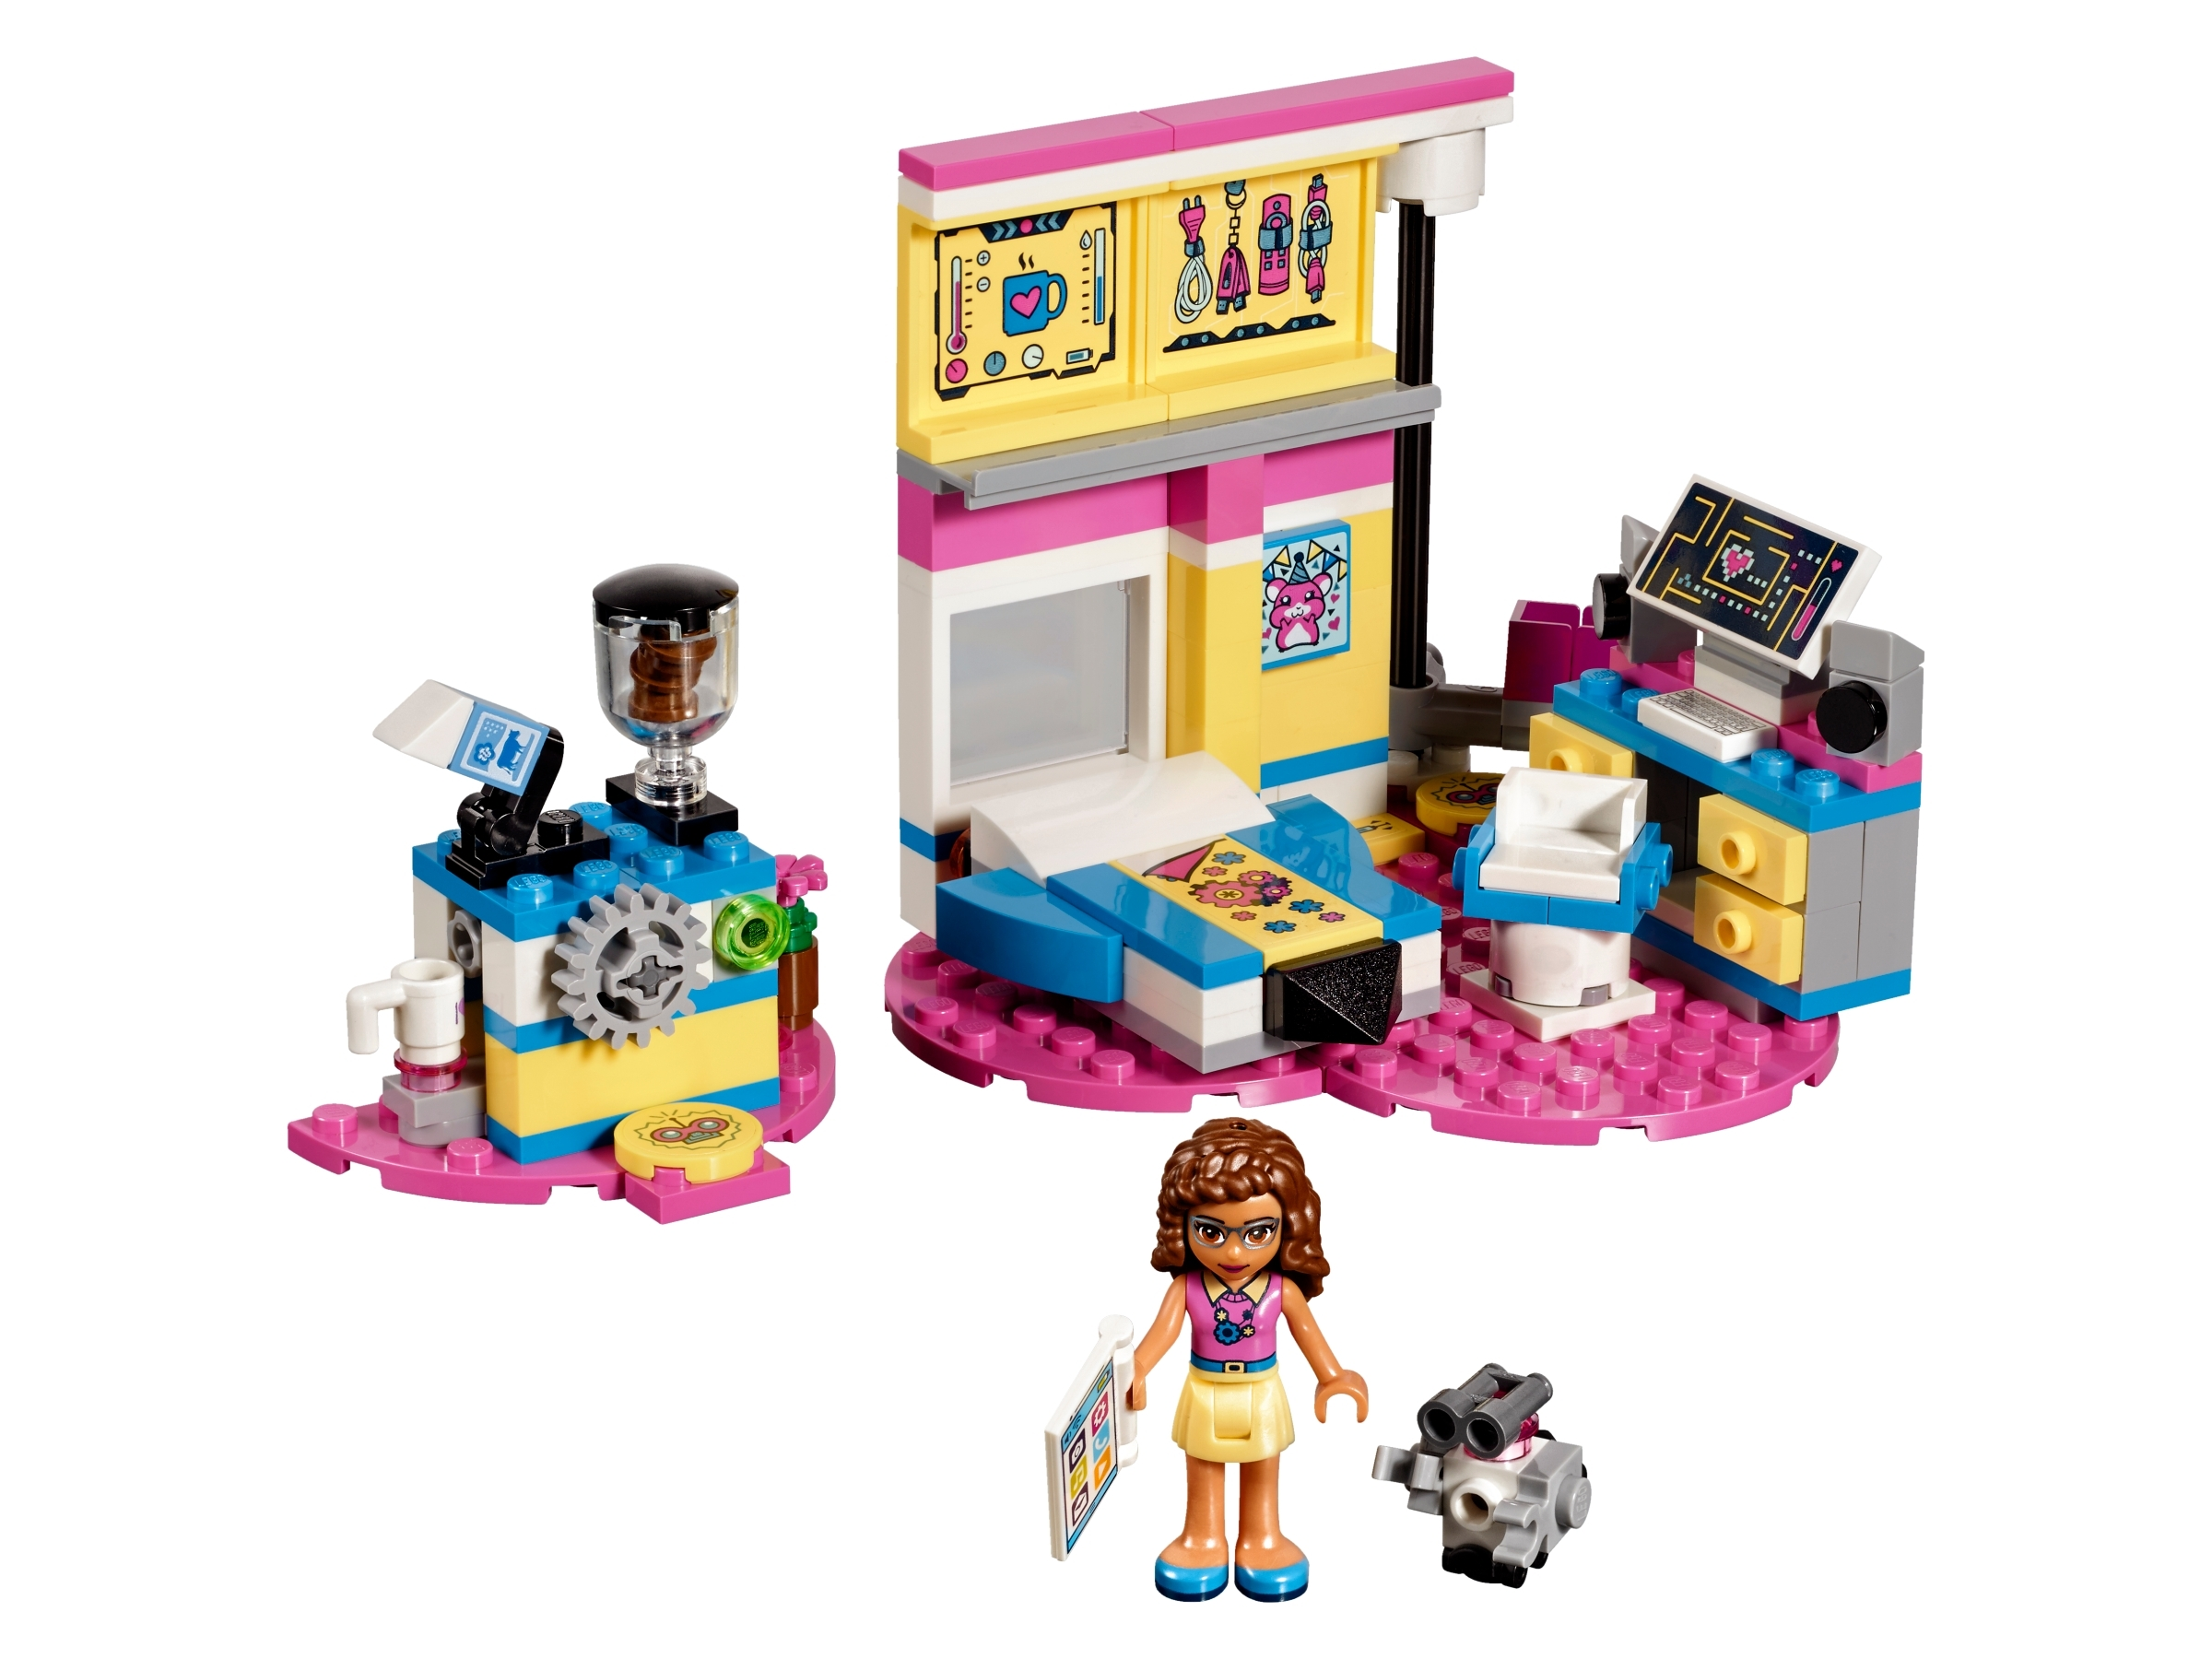 Olivia S Deluxe Bedroom 41329 Friends Buy Online At The Official Lego Shop Ca